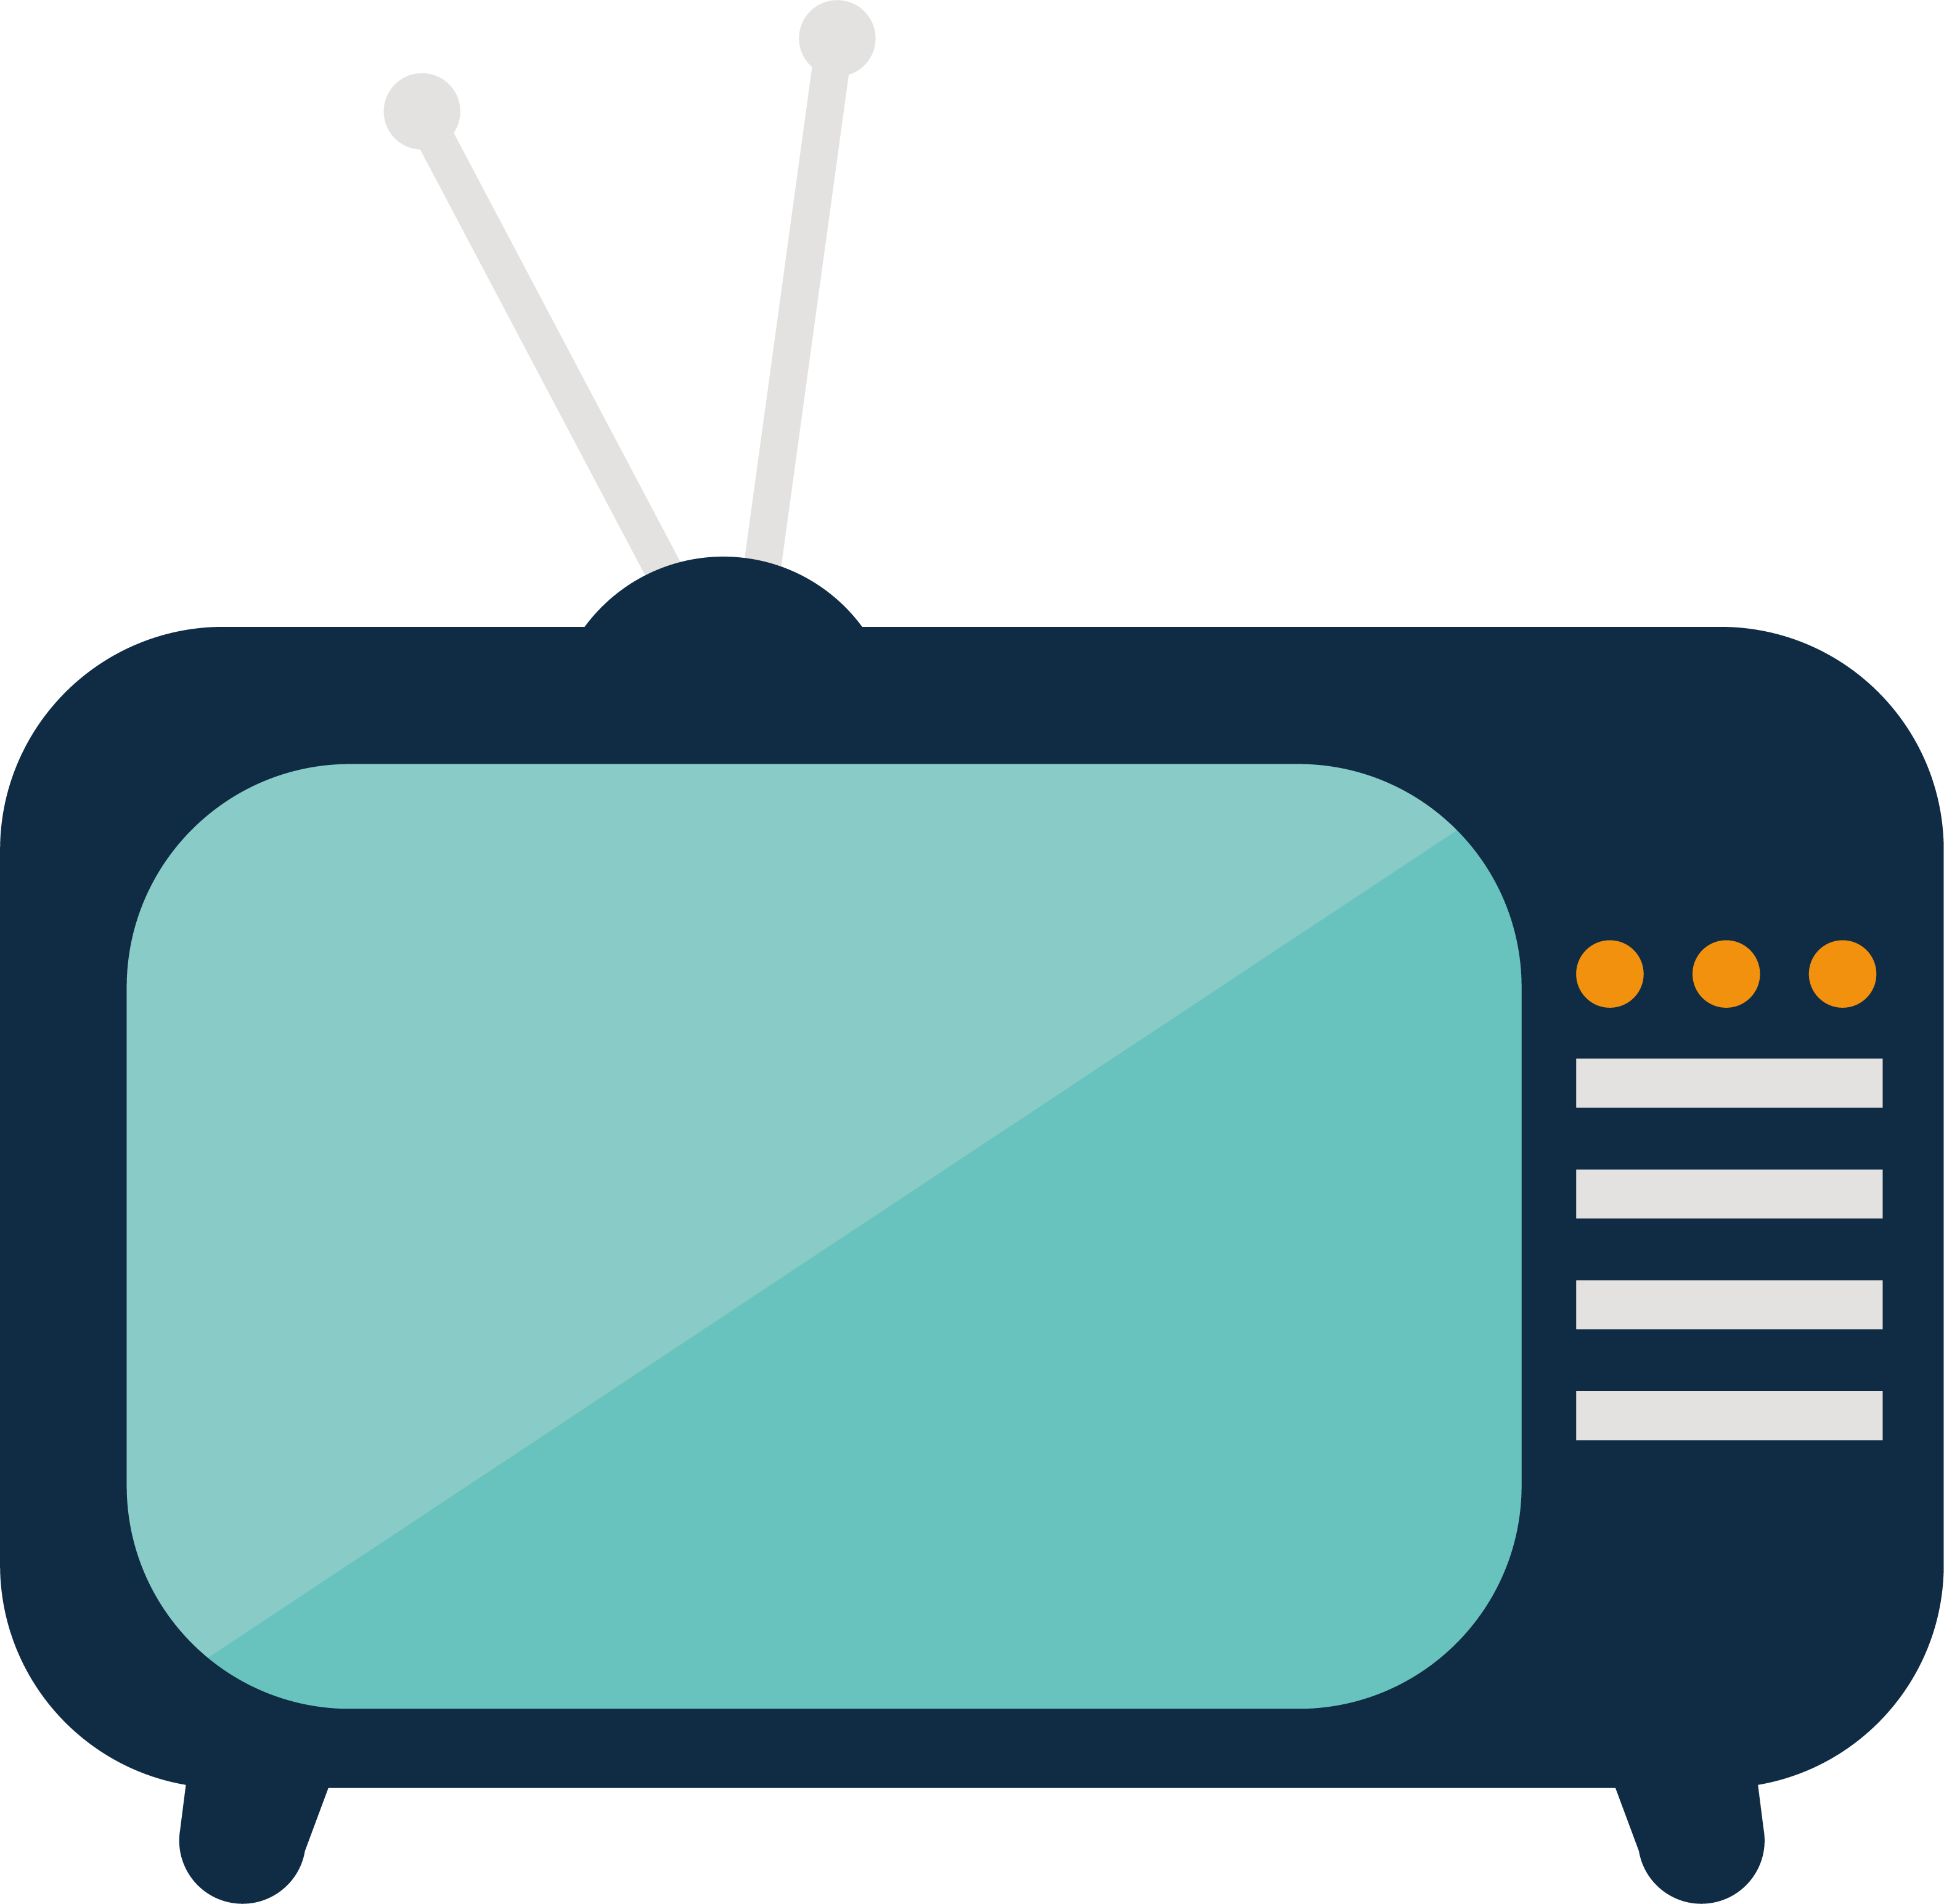 Png transparent free images. Television clipart lcd tv